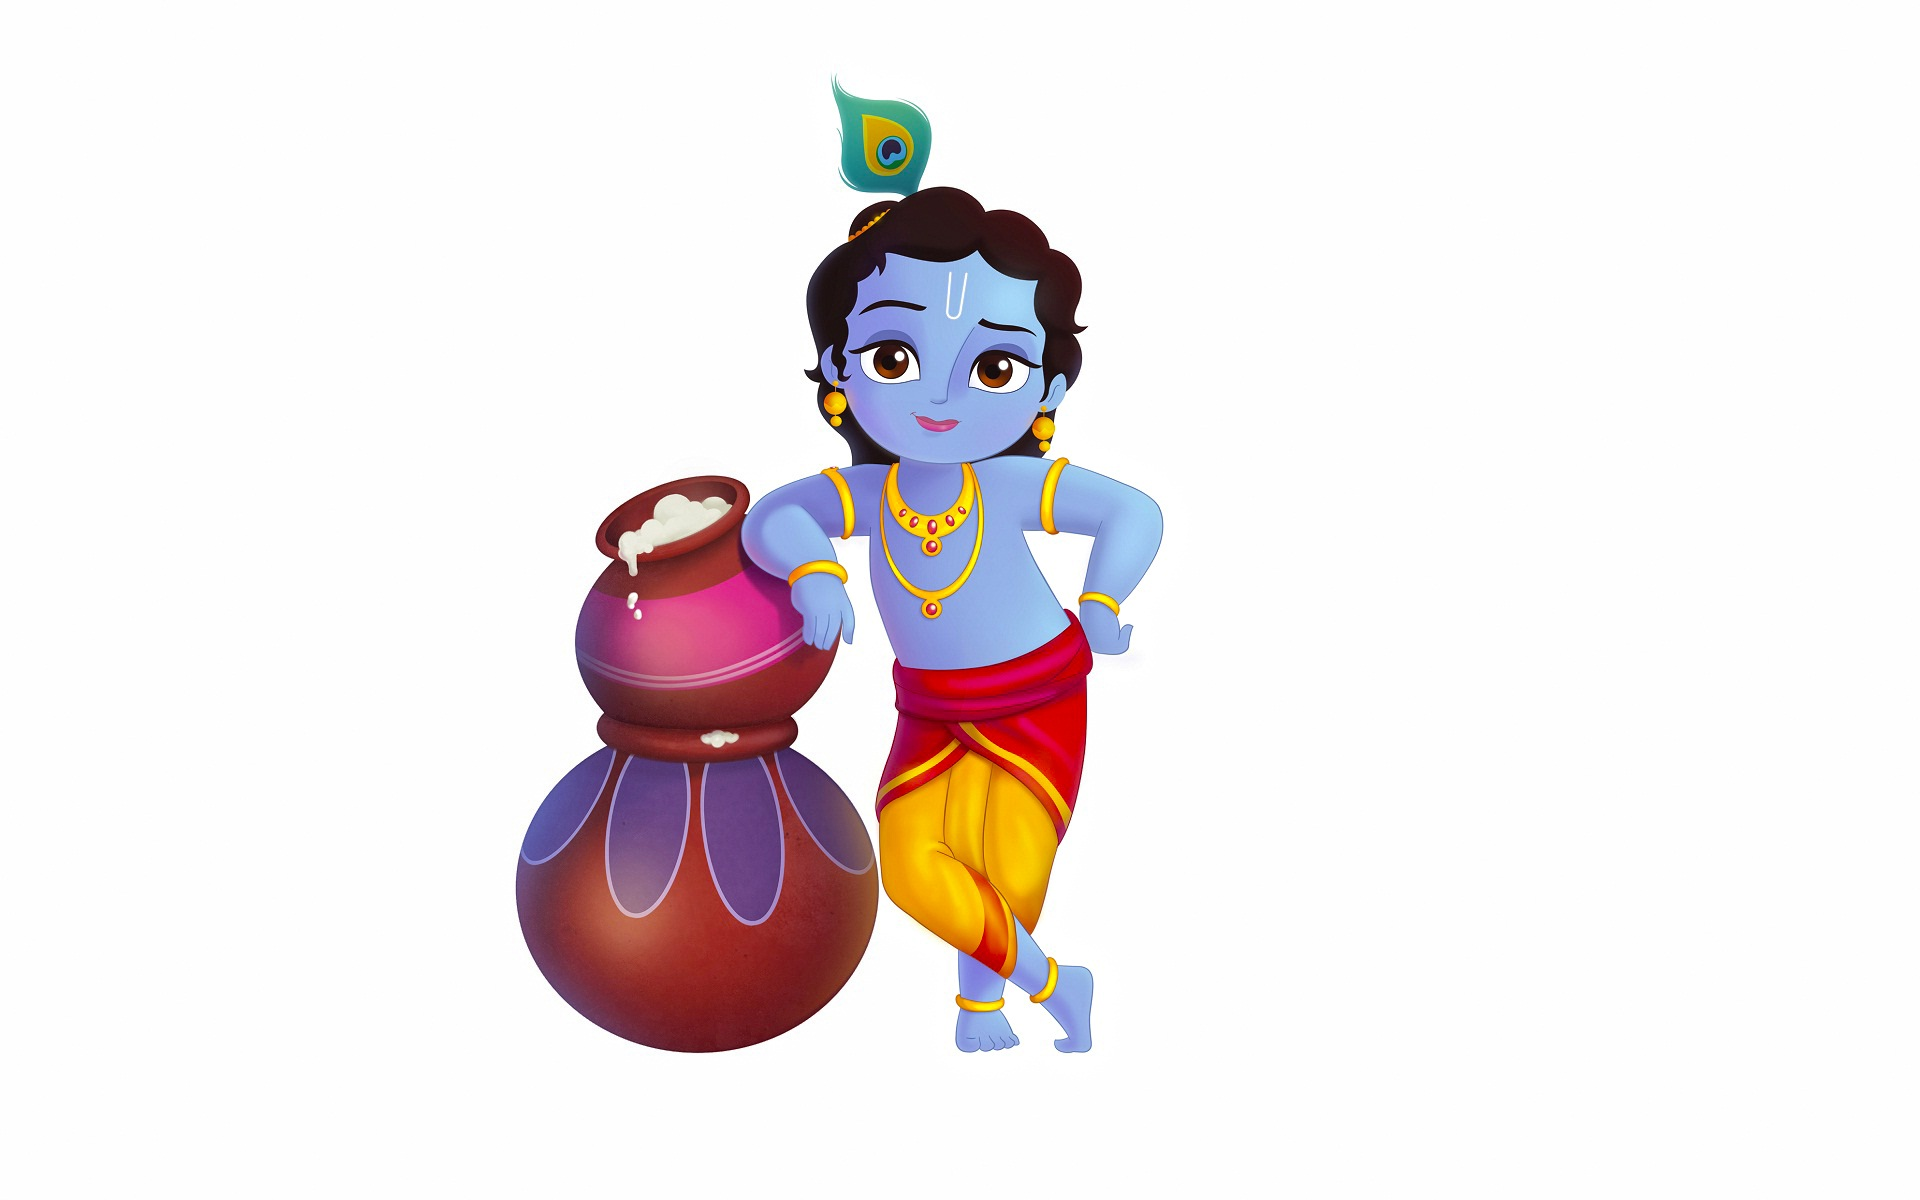 Lord Vishnu Animated Wallpapers Animation Backgrounds Download Free Pixelstalk Net